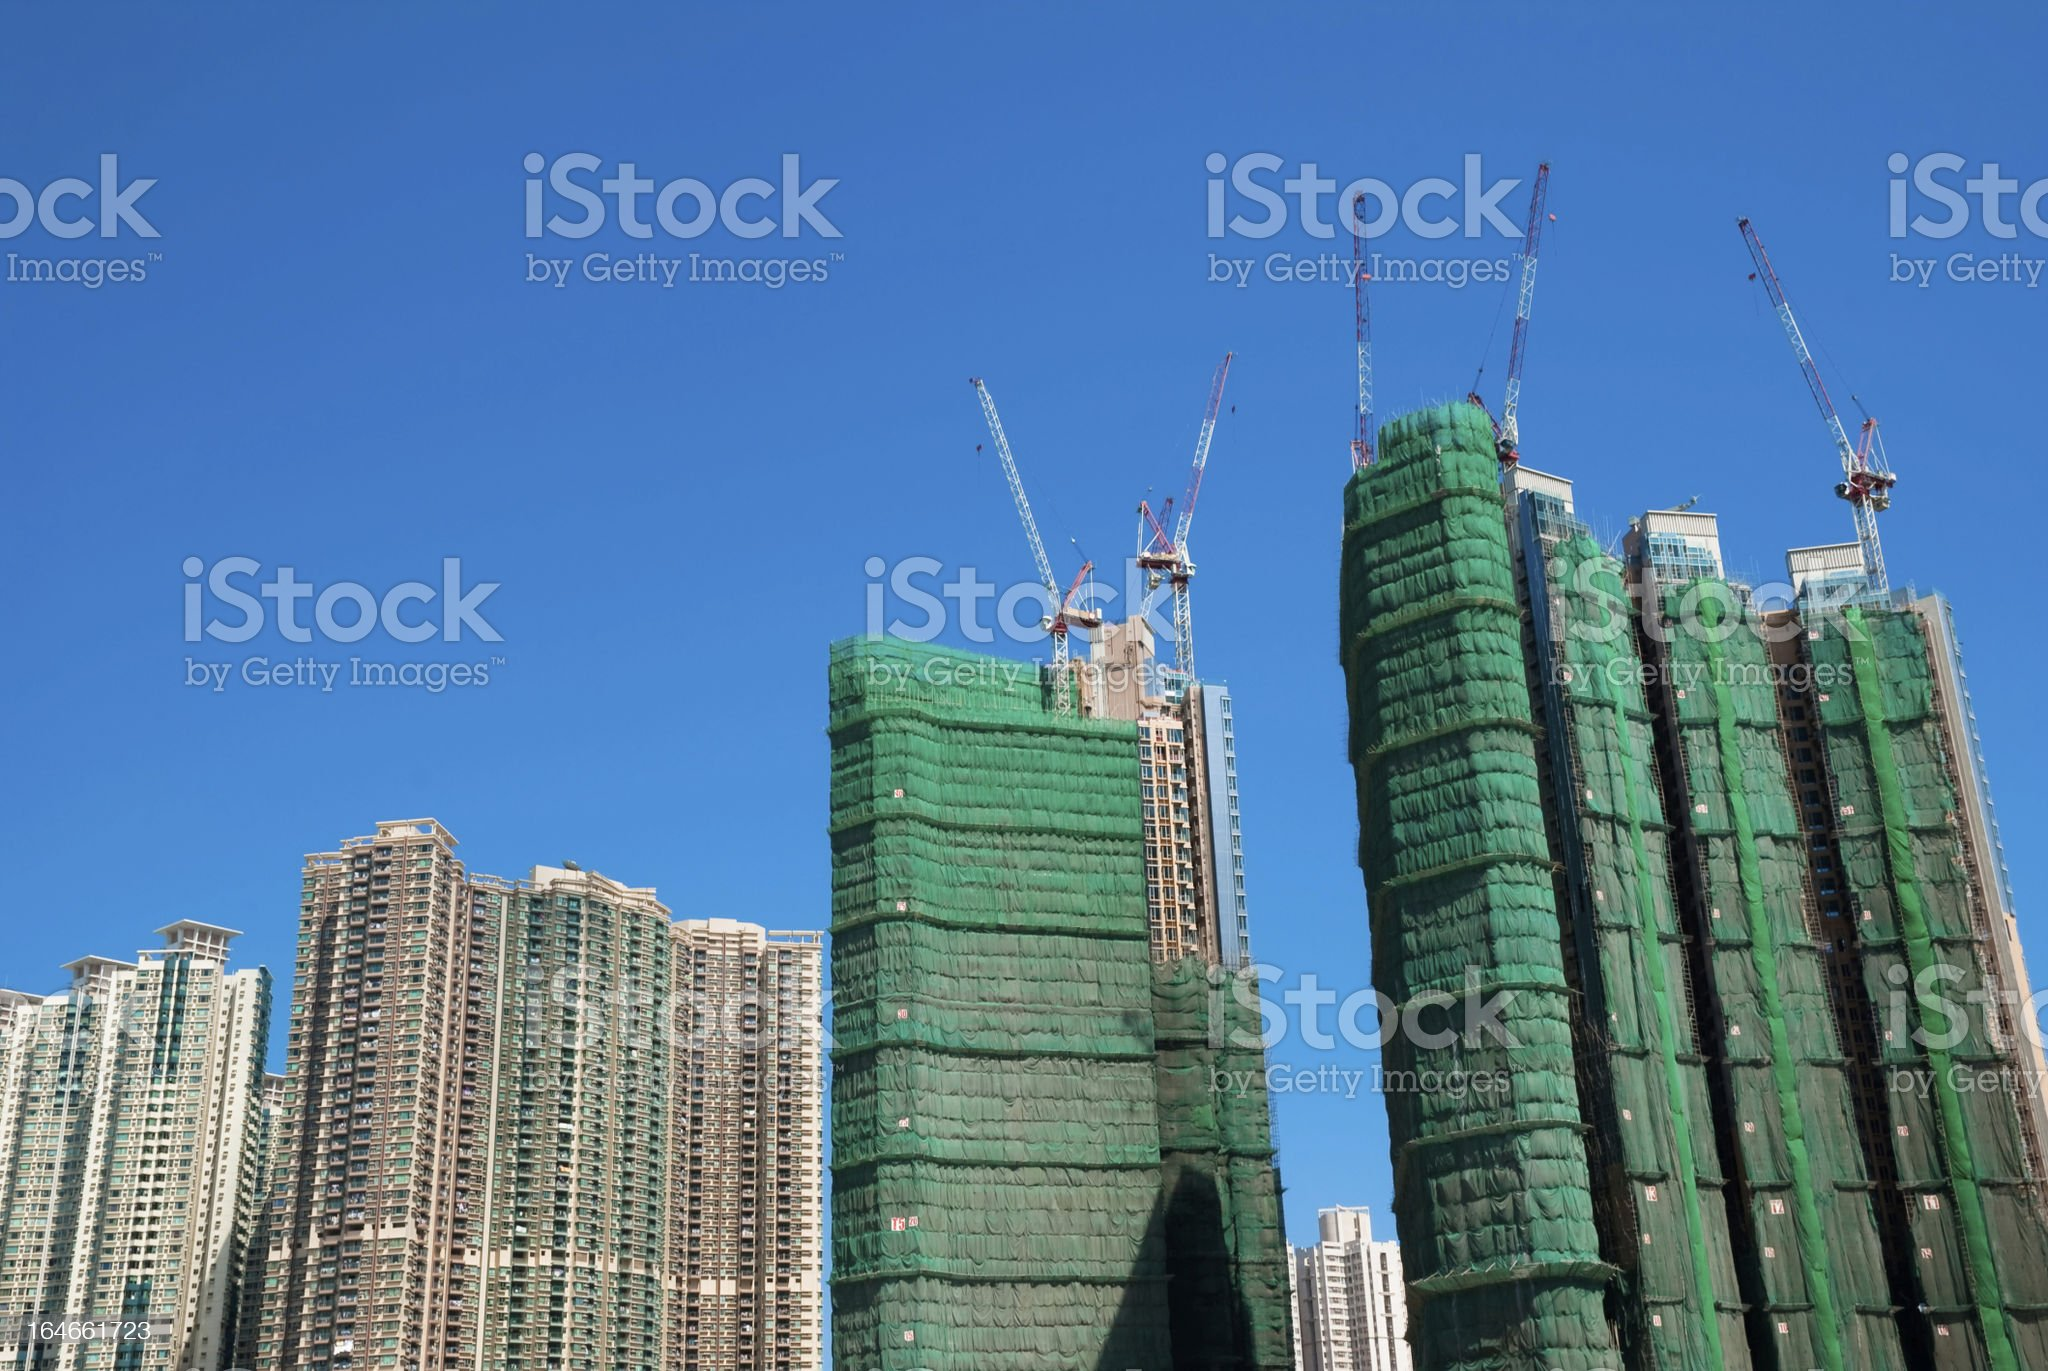 Crowded residential construction royalty-free stock photo